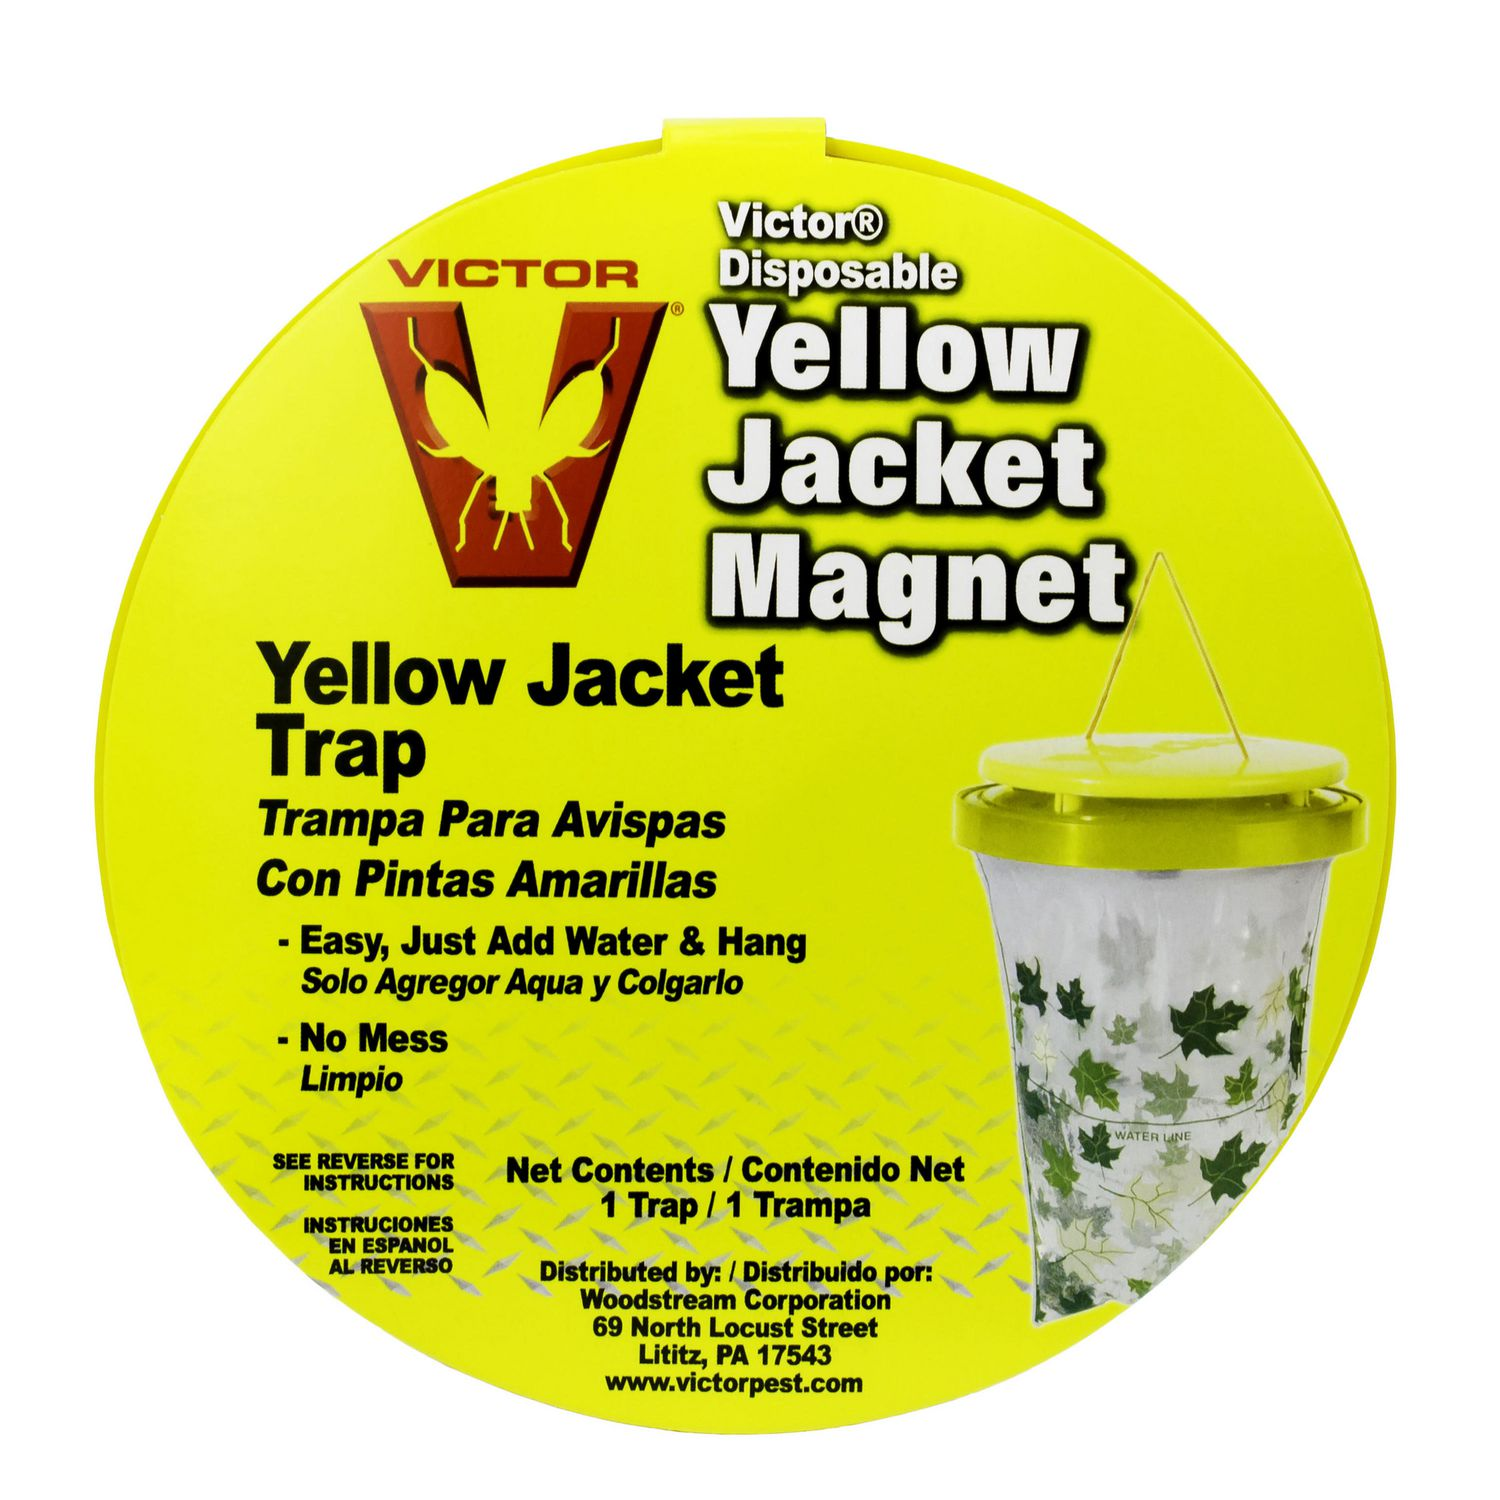 victor poison yellow jacket magnet disposable trap ca